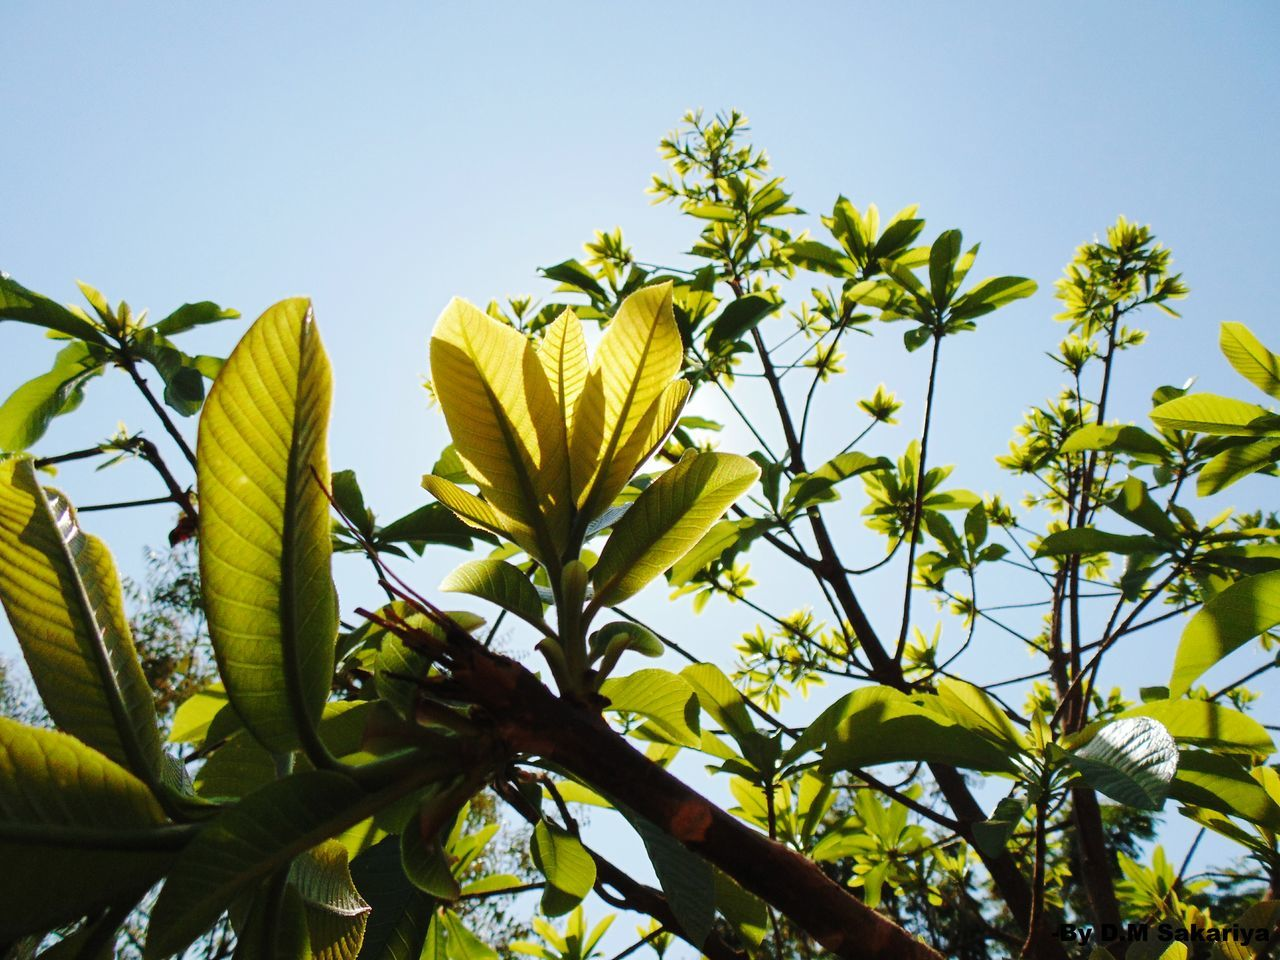 Low Angle View Of Plants Against Clear Sky